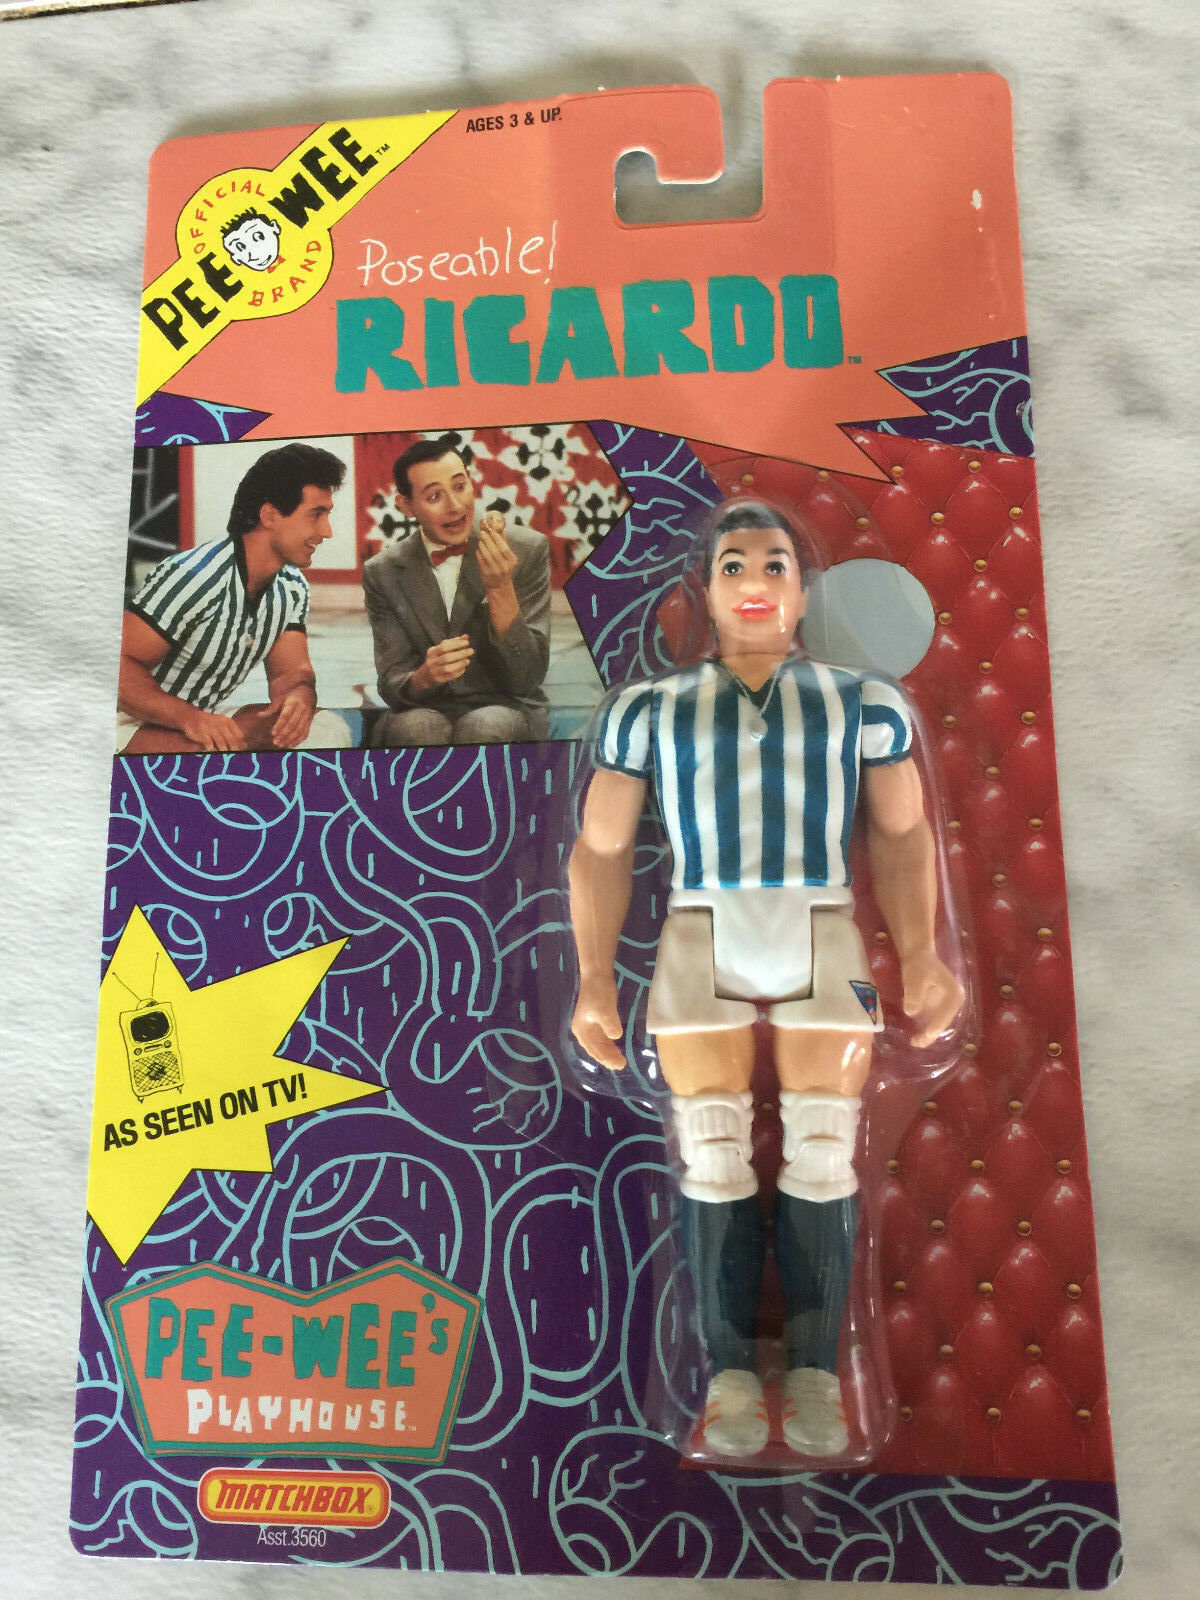 1988 PEE WEE Playhouse Poseable RICHARDO Matchbox (NEW)